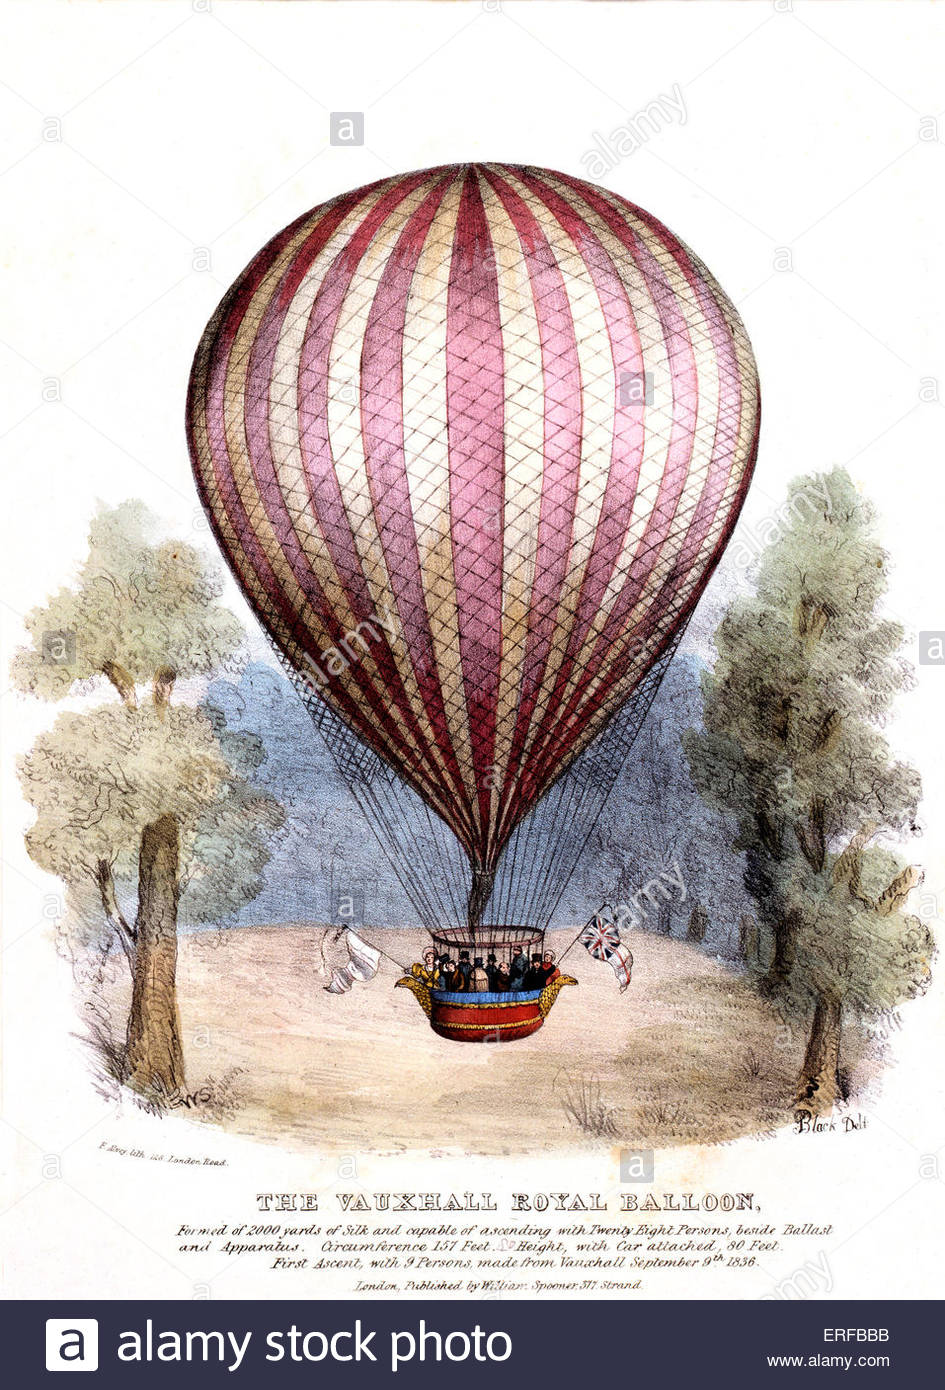 Vauxhall 'Royal Balloon', first ascent with nine persons, 9th September 1836. Charles Green constructed - Stock Image